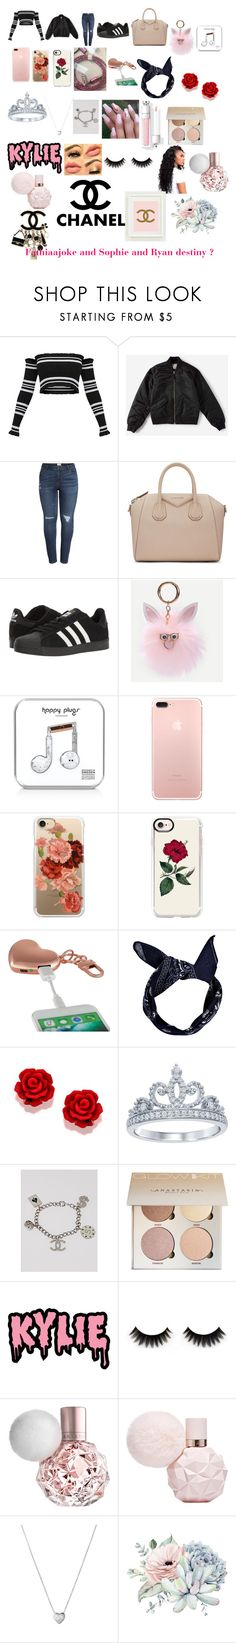 """""""Princesses fathiaajoke and princesses Sophie and princesses Ryan destiny"""" by fathiaajokeanimashaun ❤ liked on Polyvore featuring Everlane, Caslon, Givenchy, adidas, Happy Plugs, Casetify, MixBin, Boohoo, Disney and Chanel"""